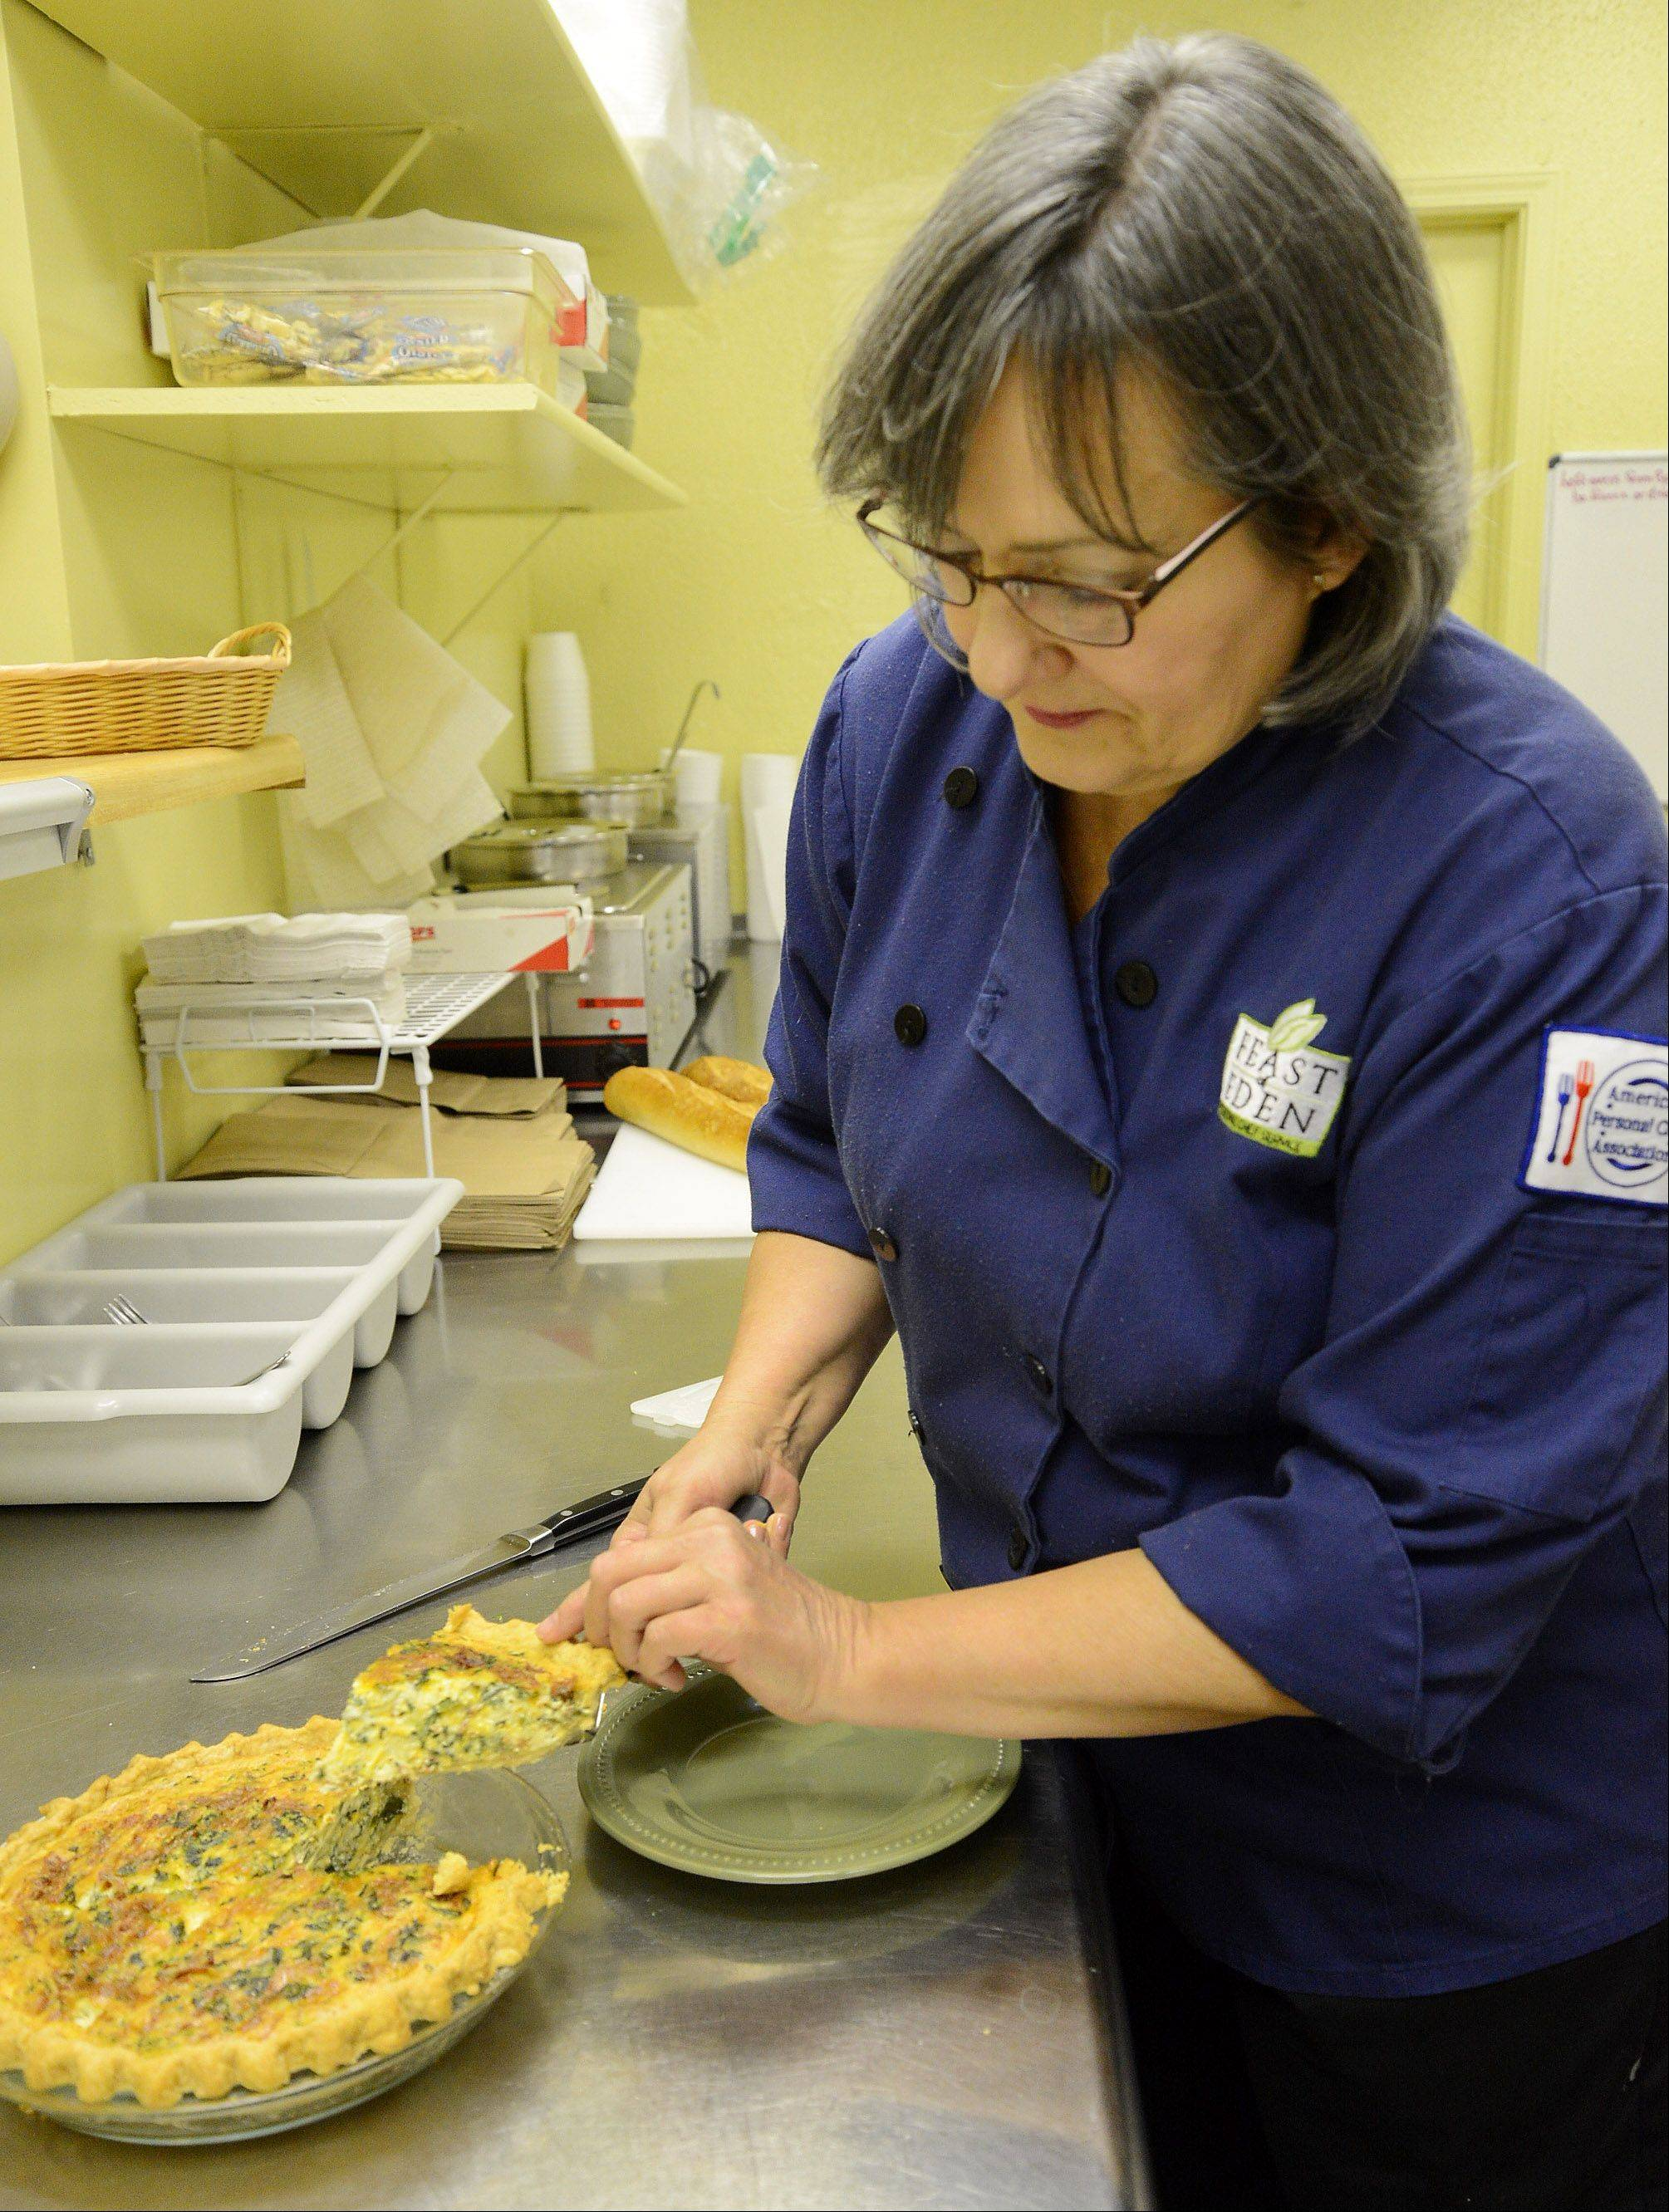 Chef Lisa Bellan adds mayonnaise to her Speedy Bacon and Cheddar Quiche to boost the flavor and texture of the filling.